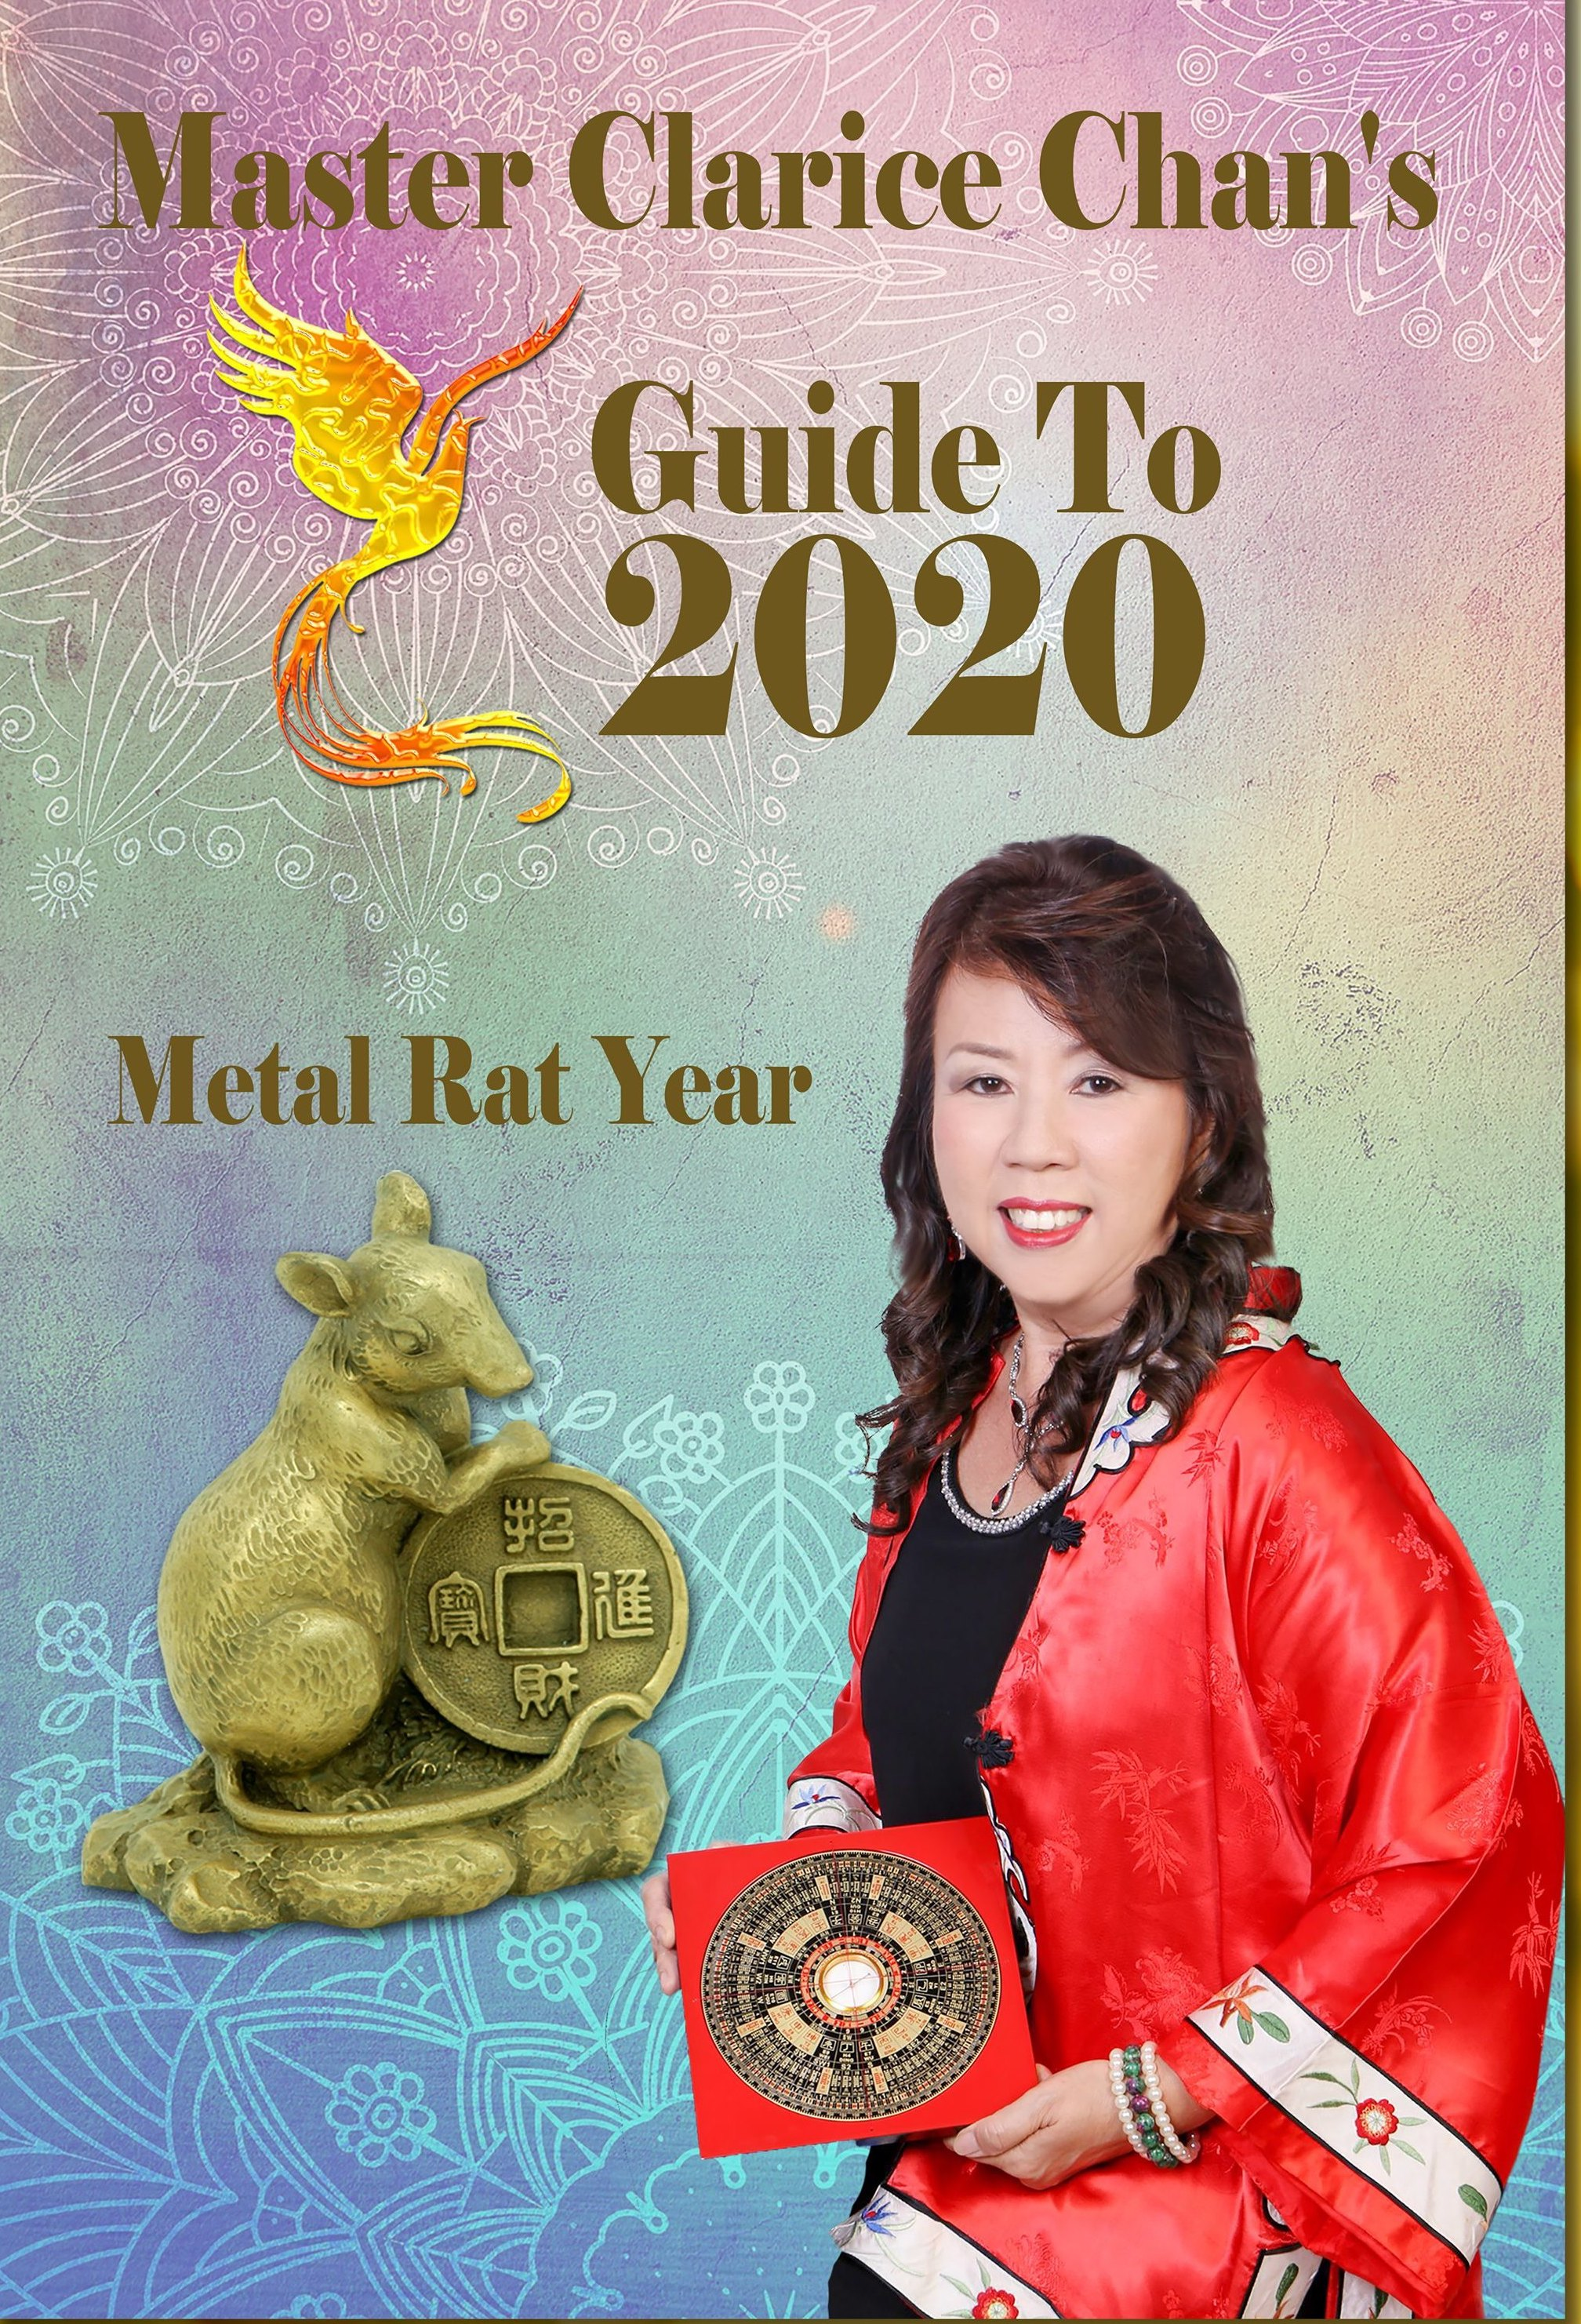 Master Clarice Chan's Guide to 2020